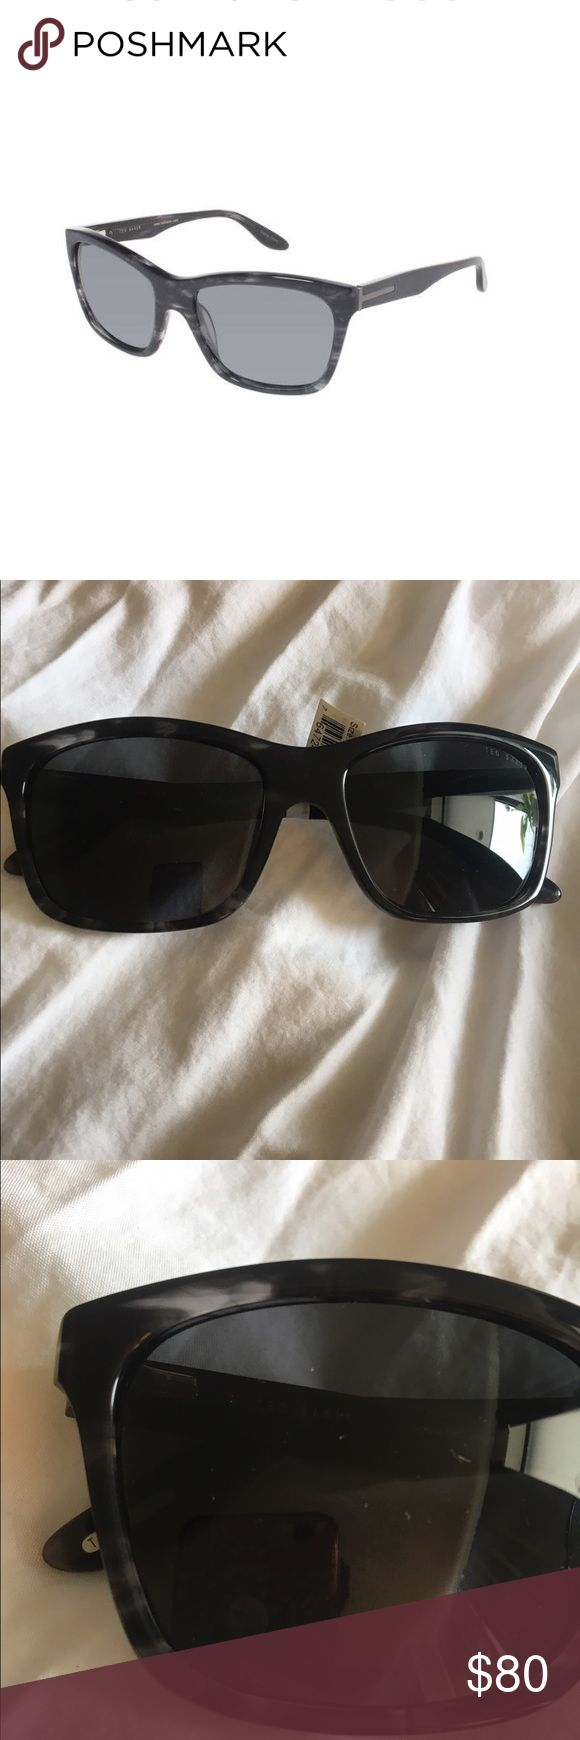 Ted Baker Black Horn Sunglasses New Ted Baker designer sunglasses brand new with tags in Black Horn. Looks like a dark tortoise. Got these as a gift and I have way too many sunglasses! Ted Baker Accessories Sunglasses